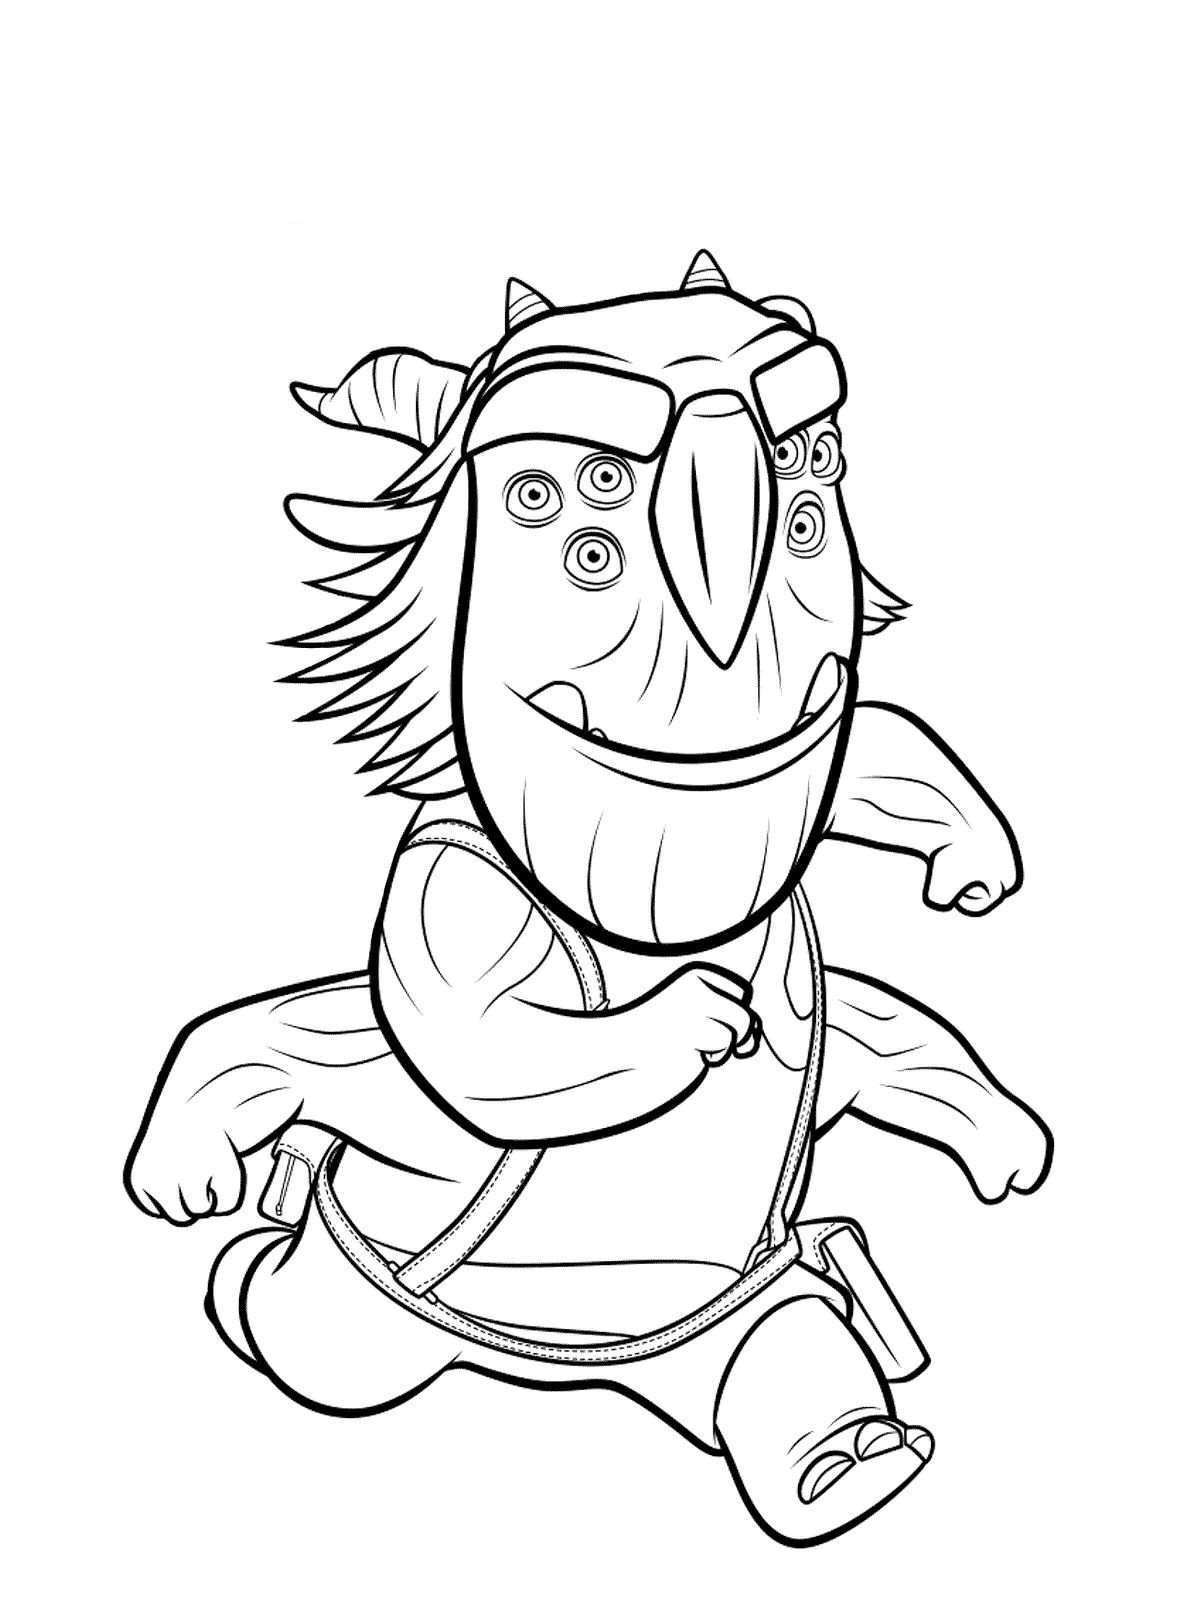 trollhunters coloring pages 10 coloring pages of Trollhunters on Kids n Fun.co.uk. Op Kids n  trollhunters coloring pages